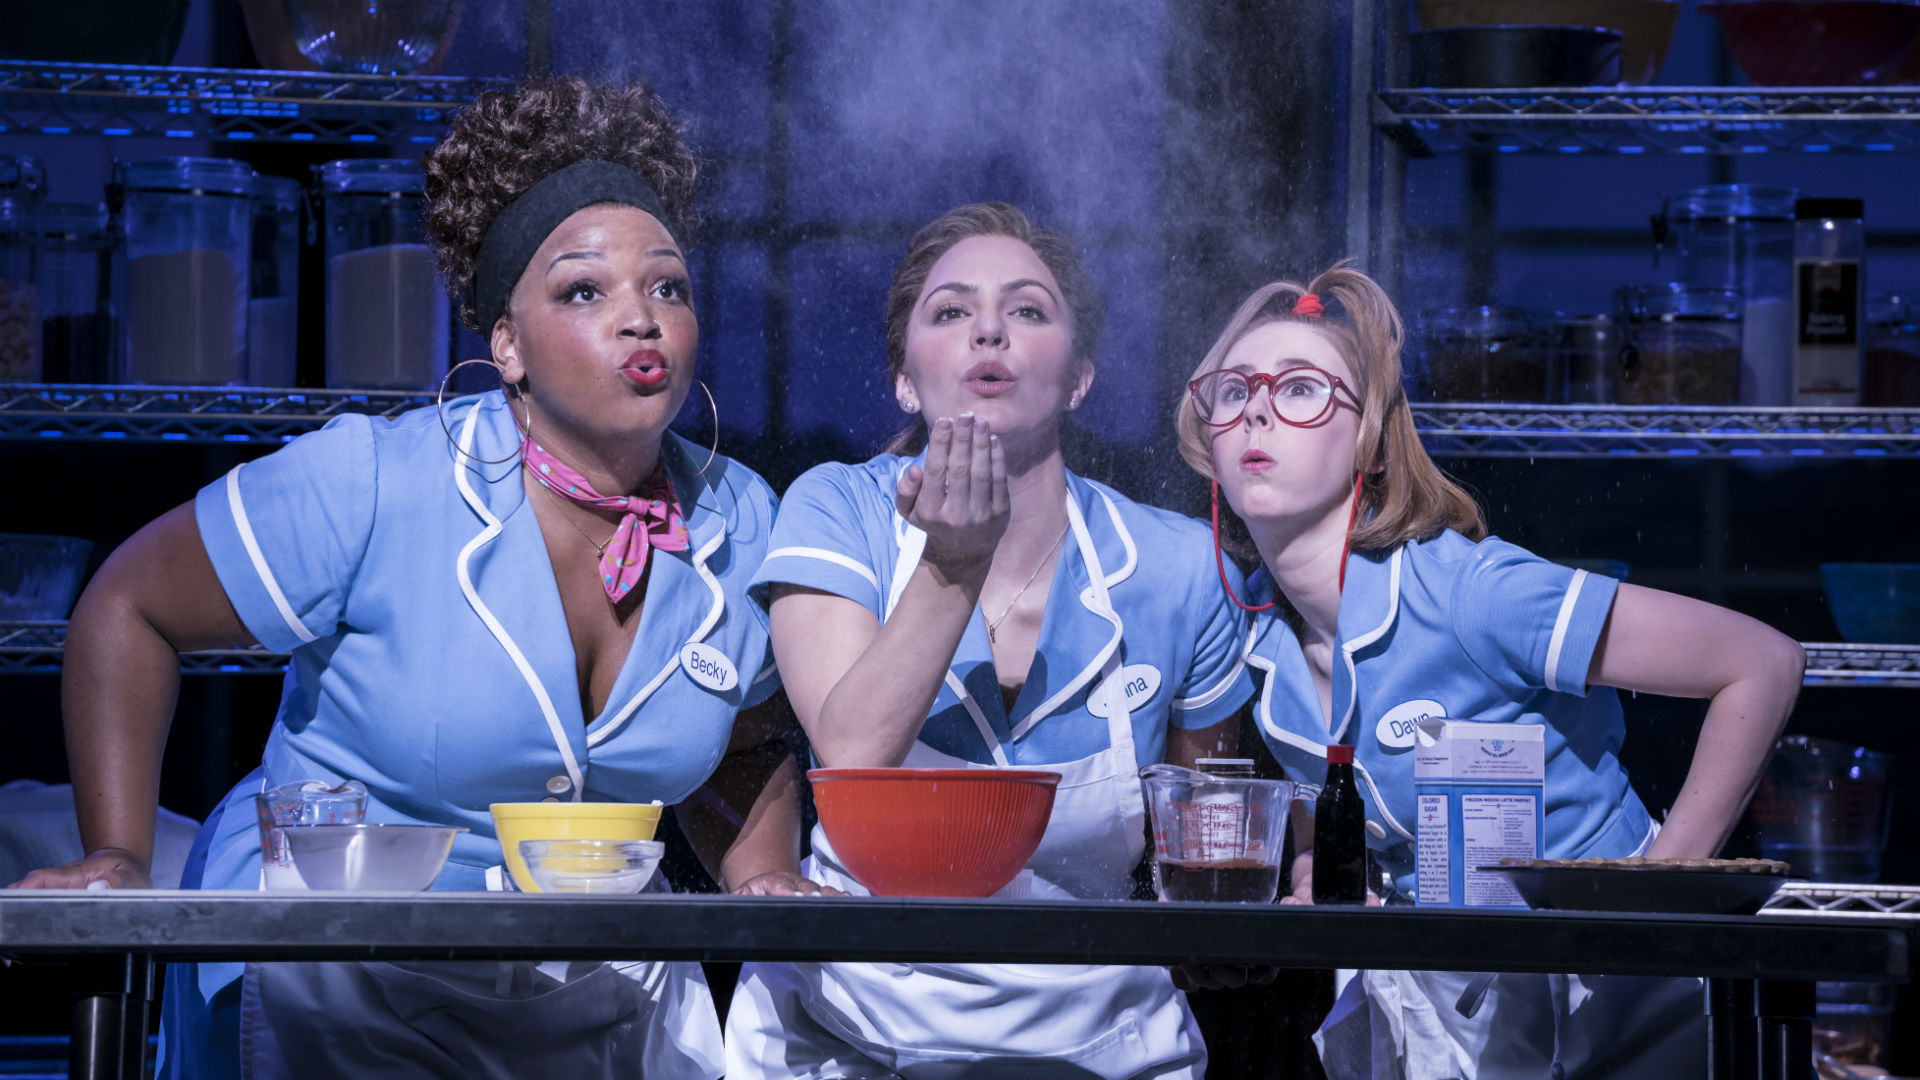 Three waitresses sit side by side at a kitchen table. One holds out a handful of flour in front of her and all three blow lightly to make the flour rise up into the air.